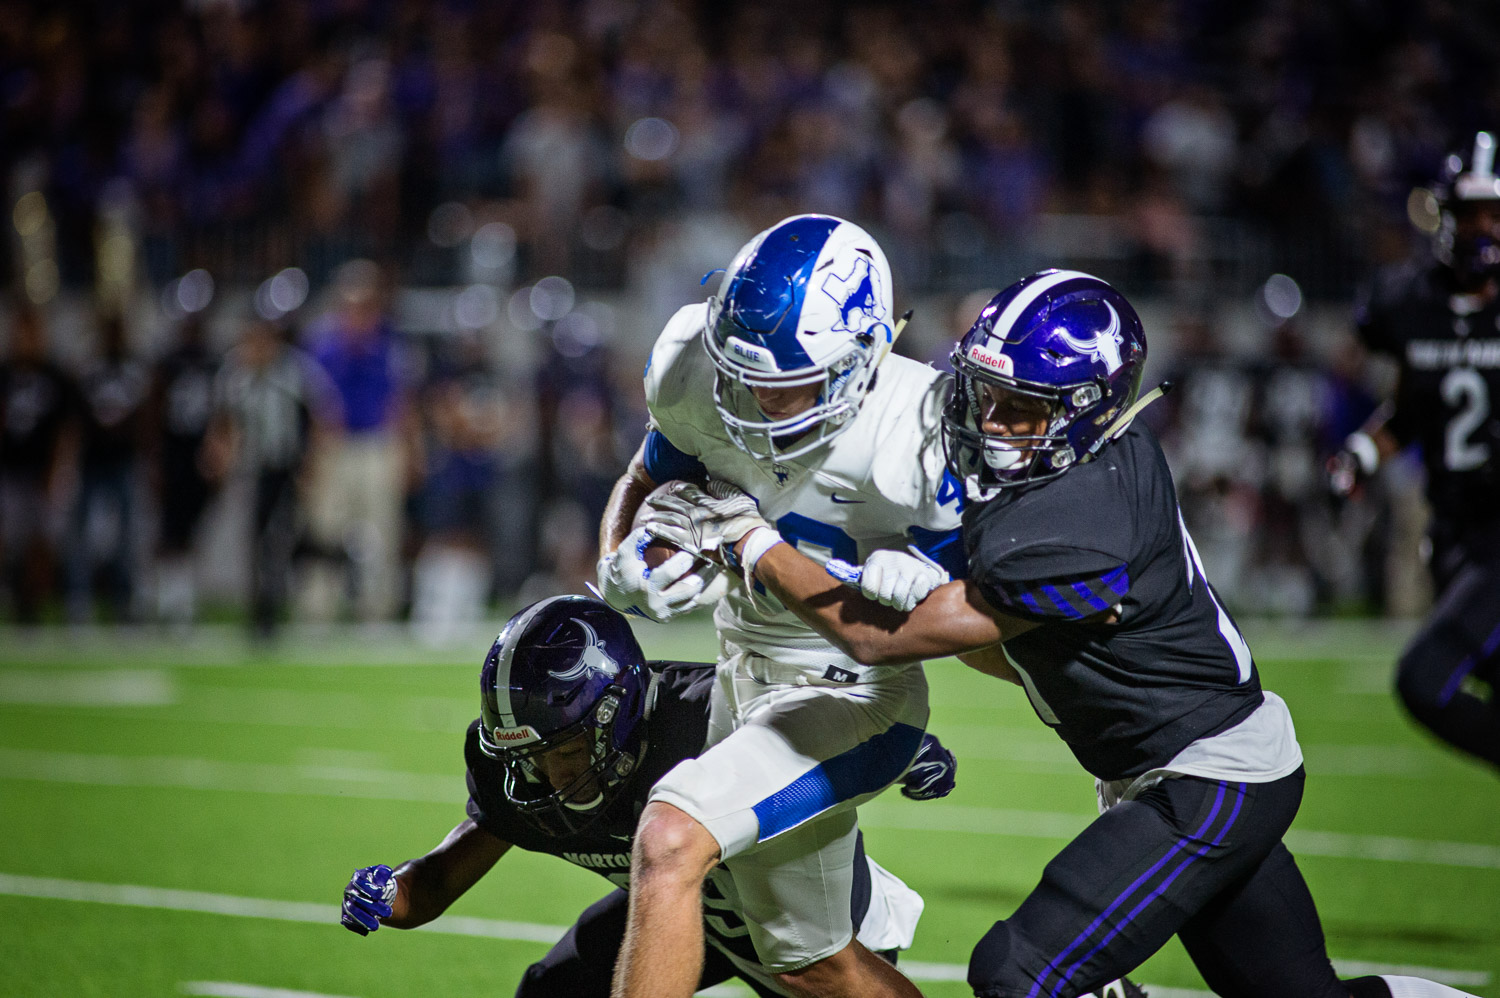 Tyalor-high-school-football-friday night-katy-texas-19.jpg